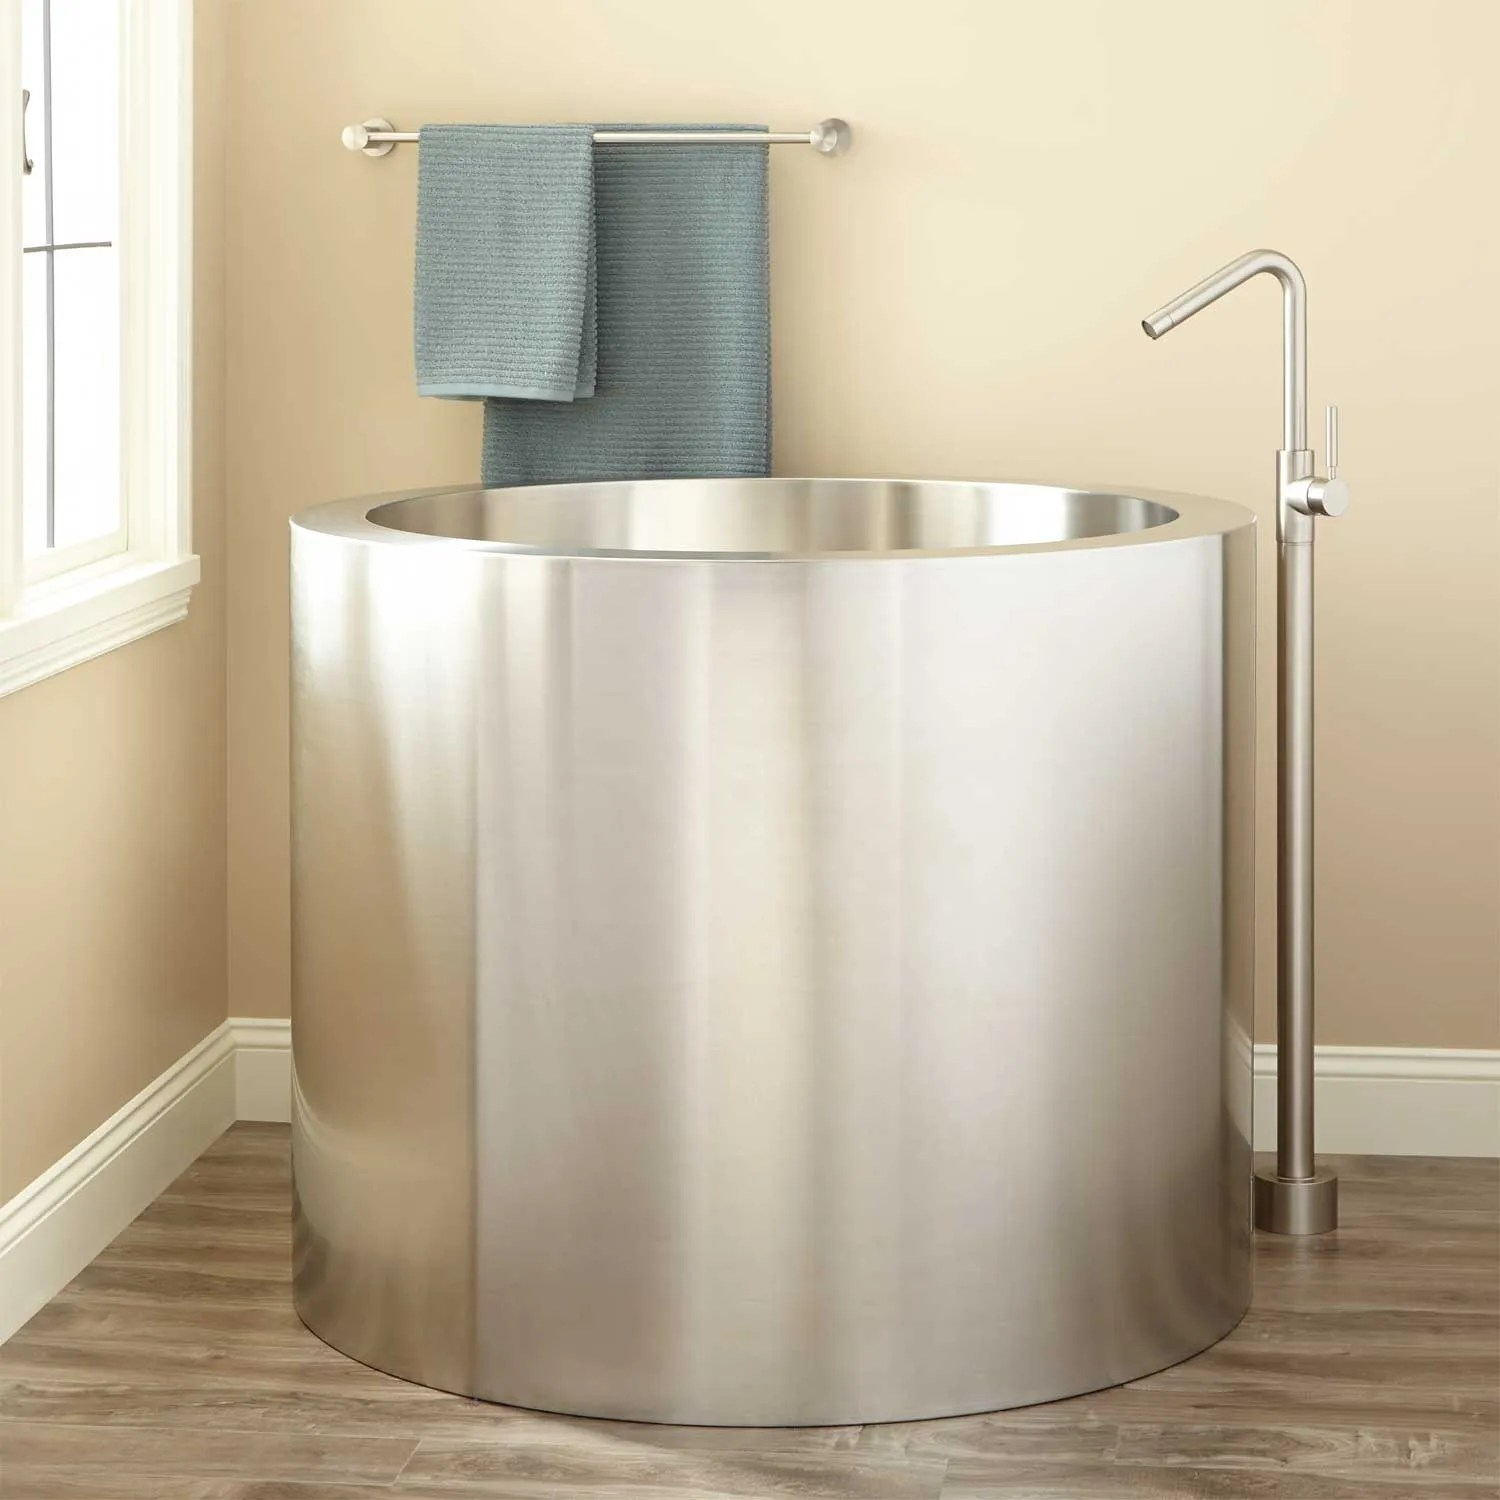 What Is A Soaking Tub